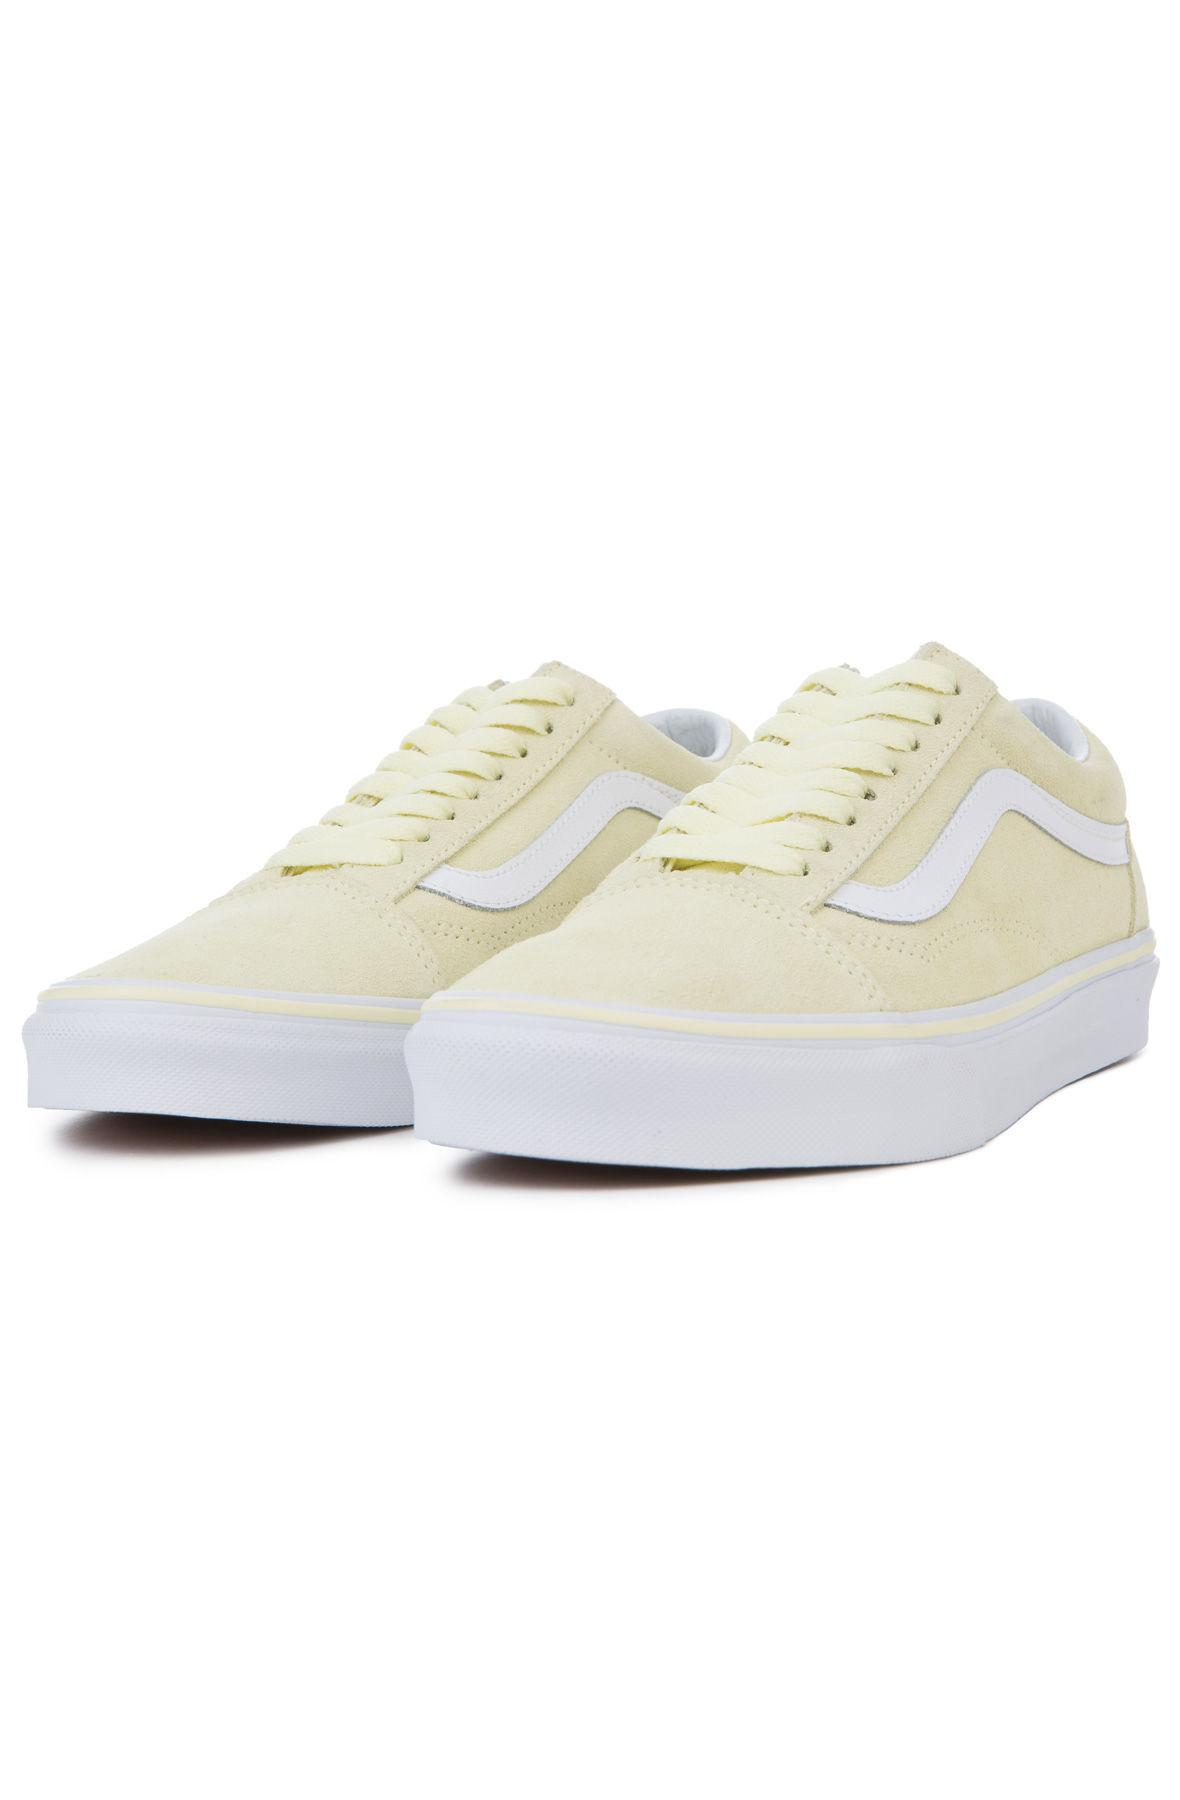 Lyst - Vans The Women s Old Skool Suede In Tender Yellow And True ... 63e0406e3